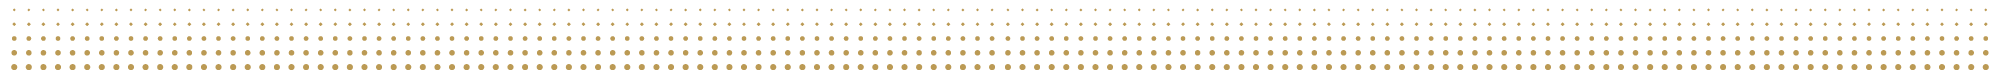 Woodford_DotPattern_Gold.png